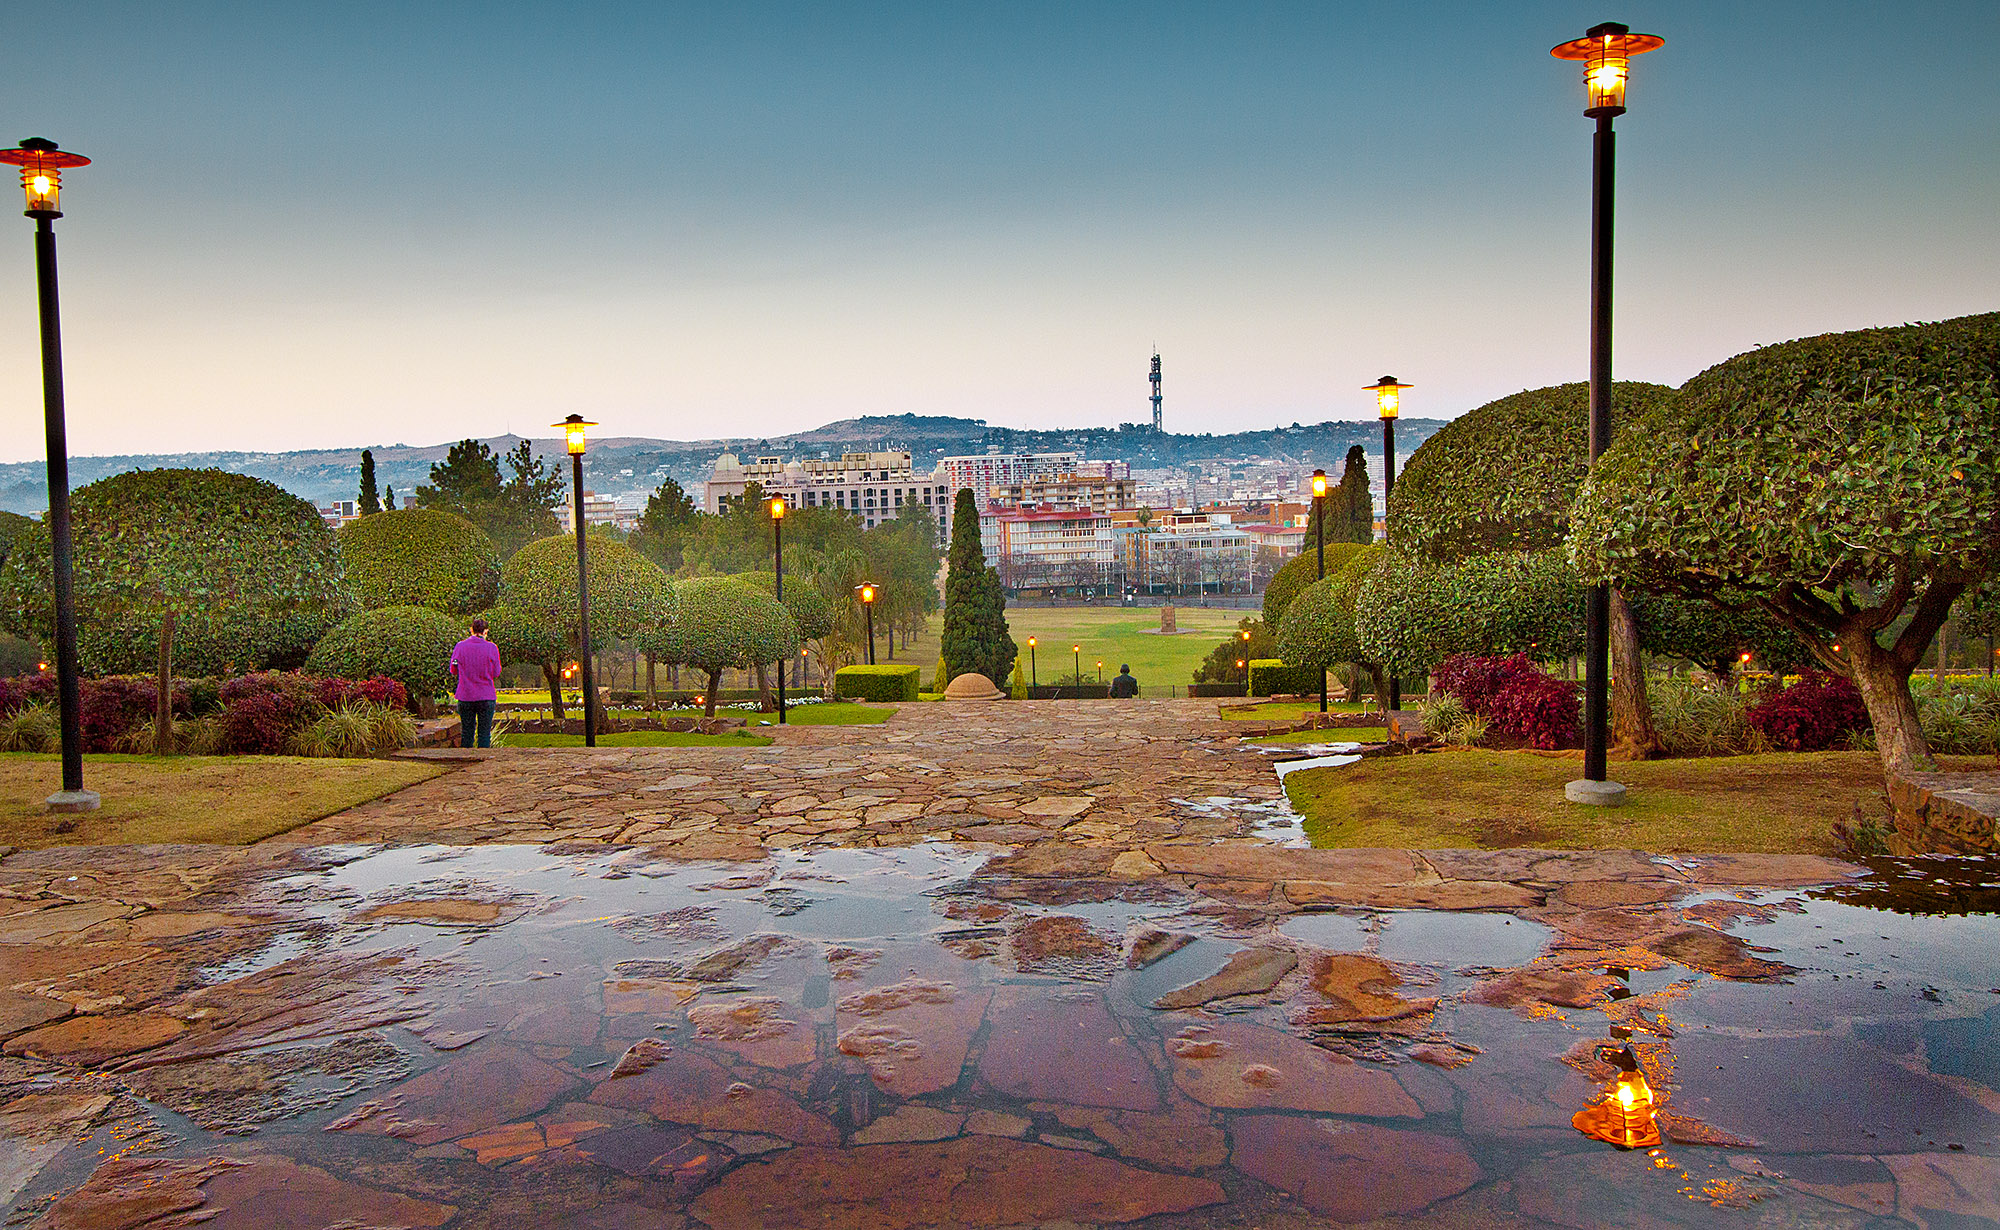 Pretoria South Africa  city photos gallery : Description 1 Union Buildings gardens Pretoria South Africa